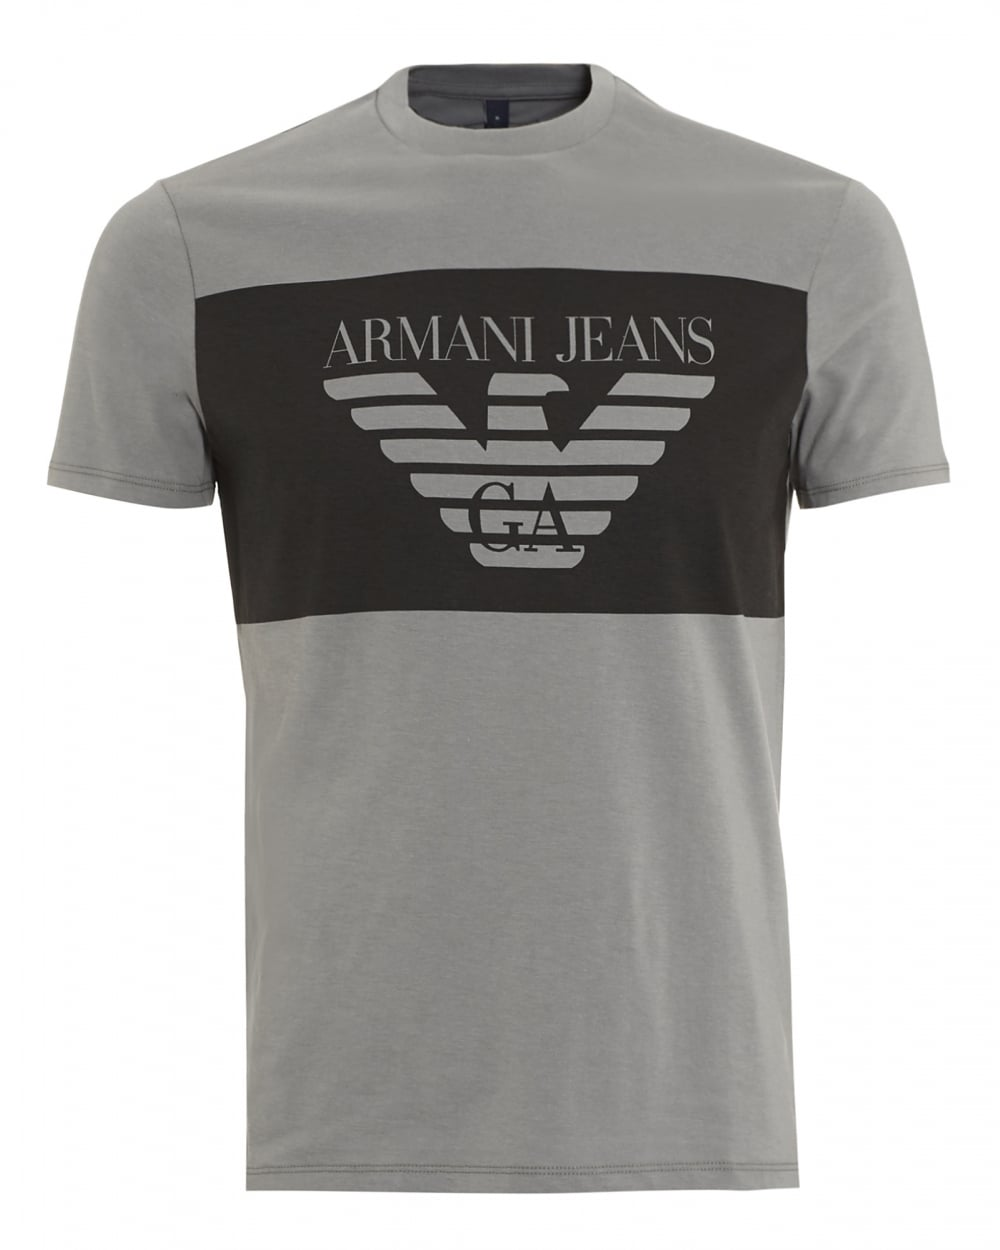 Armani jeans mens large block t shirt regular fit grey tee for Men s regular fit shirts